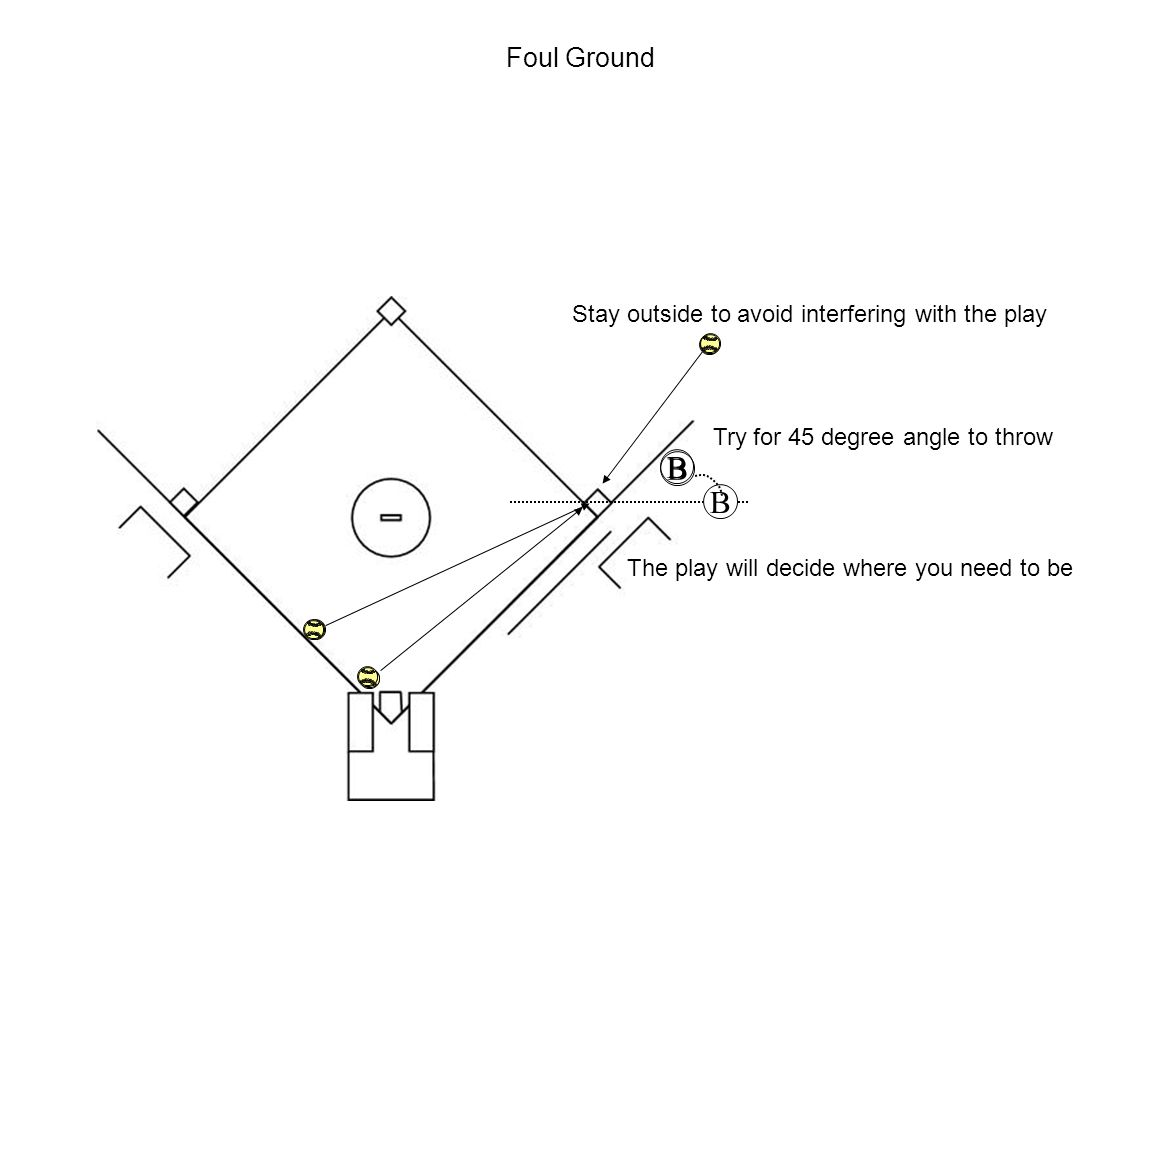 B B Foul Ground Stay outside to avoid interfering with the play